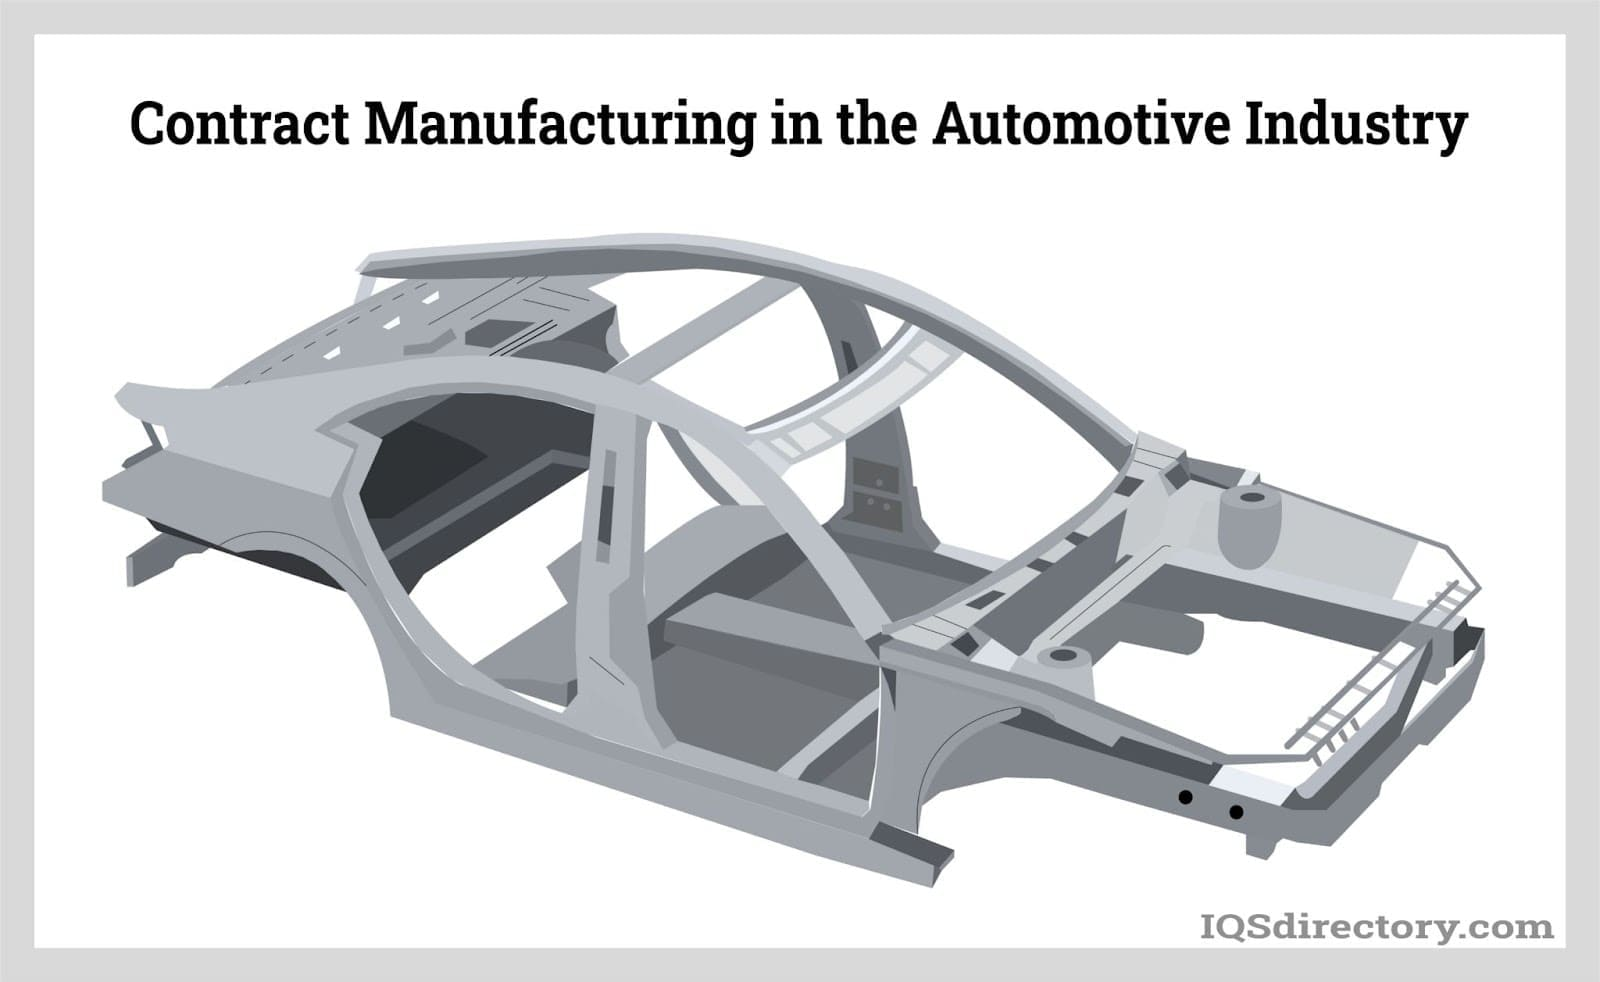 Contract Manufacturing in the Automotive Industry